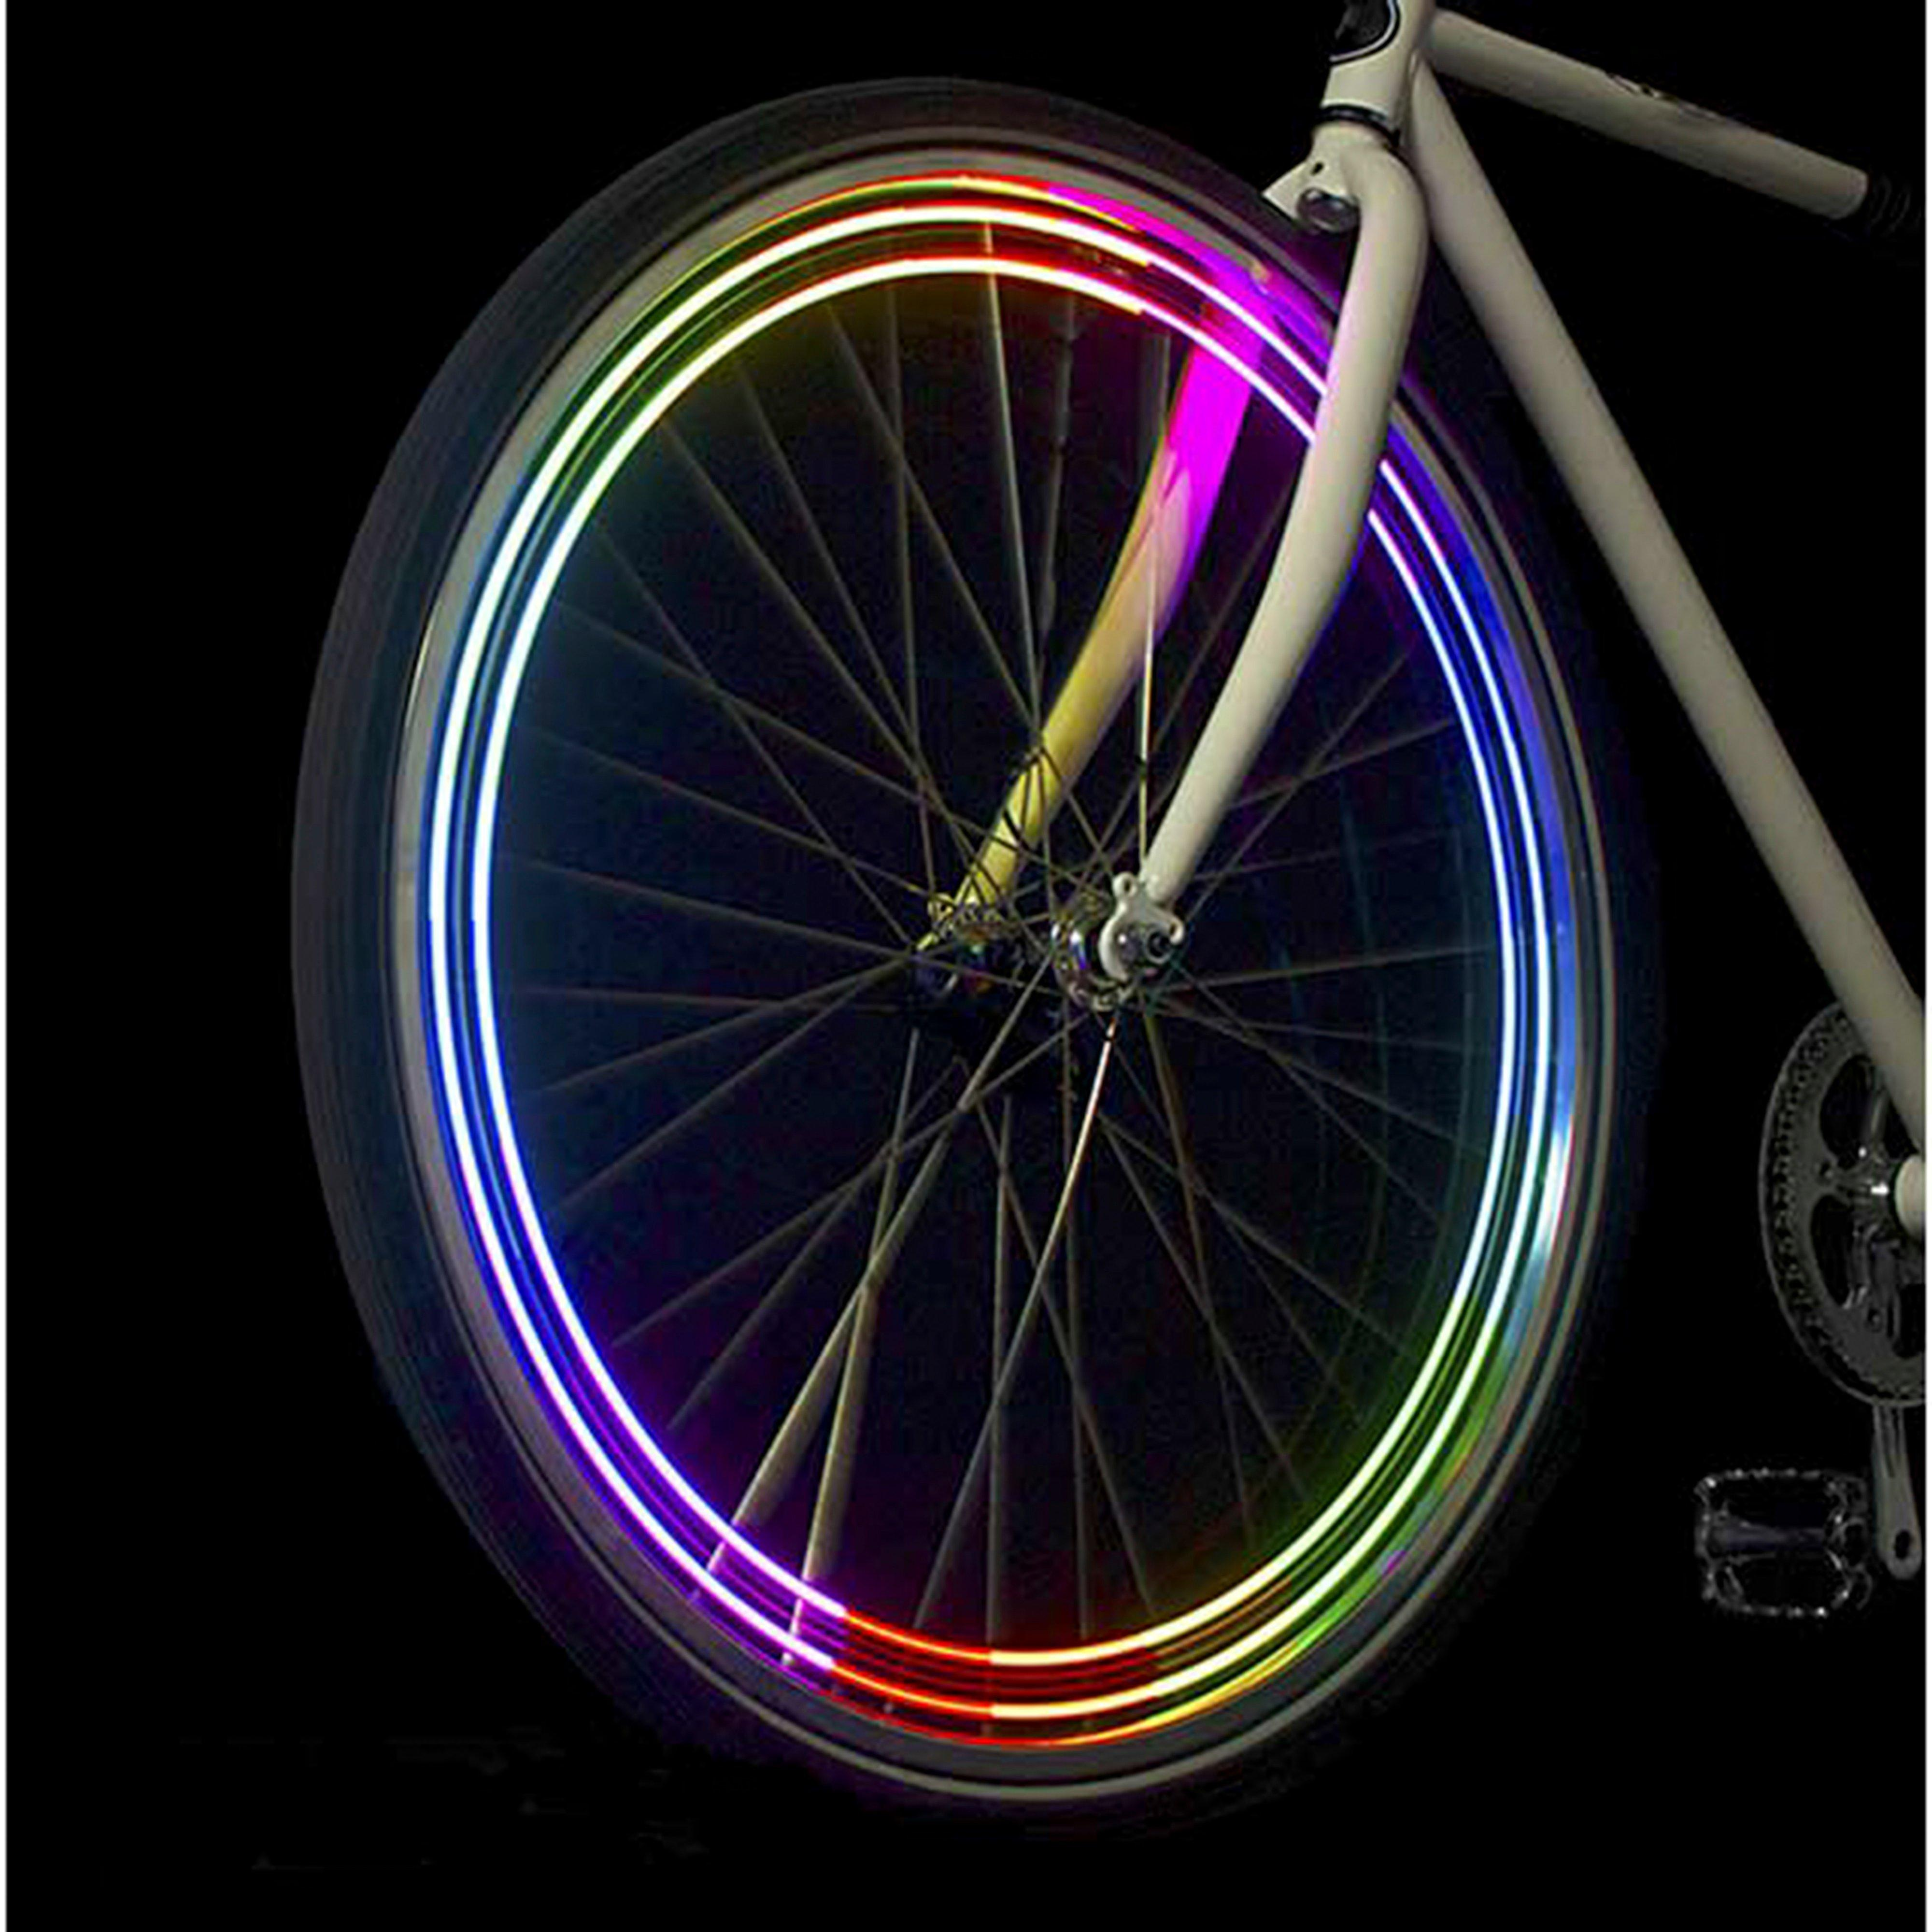 Monkeylectric Monkeylectric M204 Monkey Wheel Light